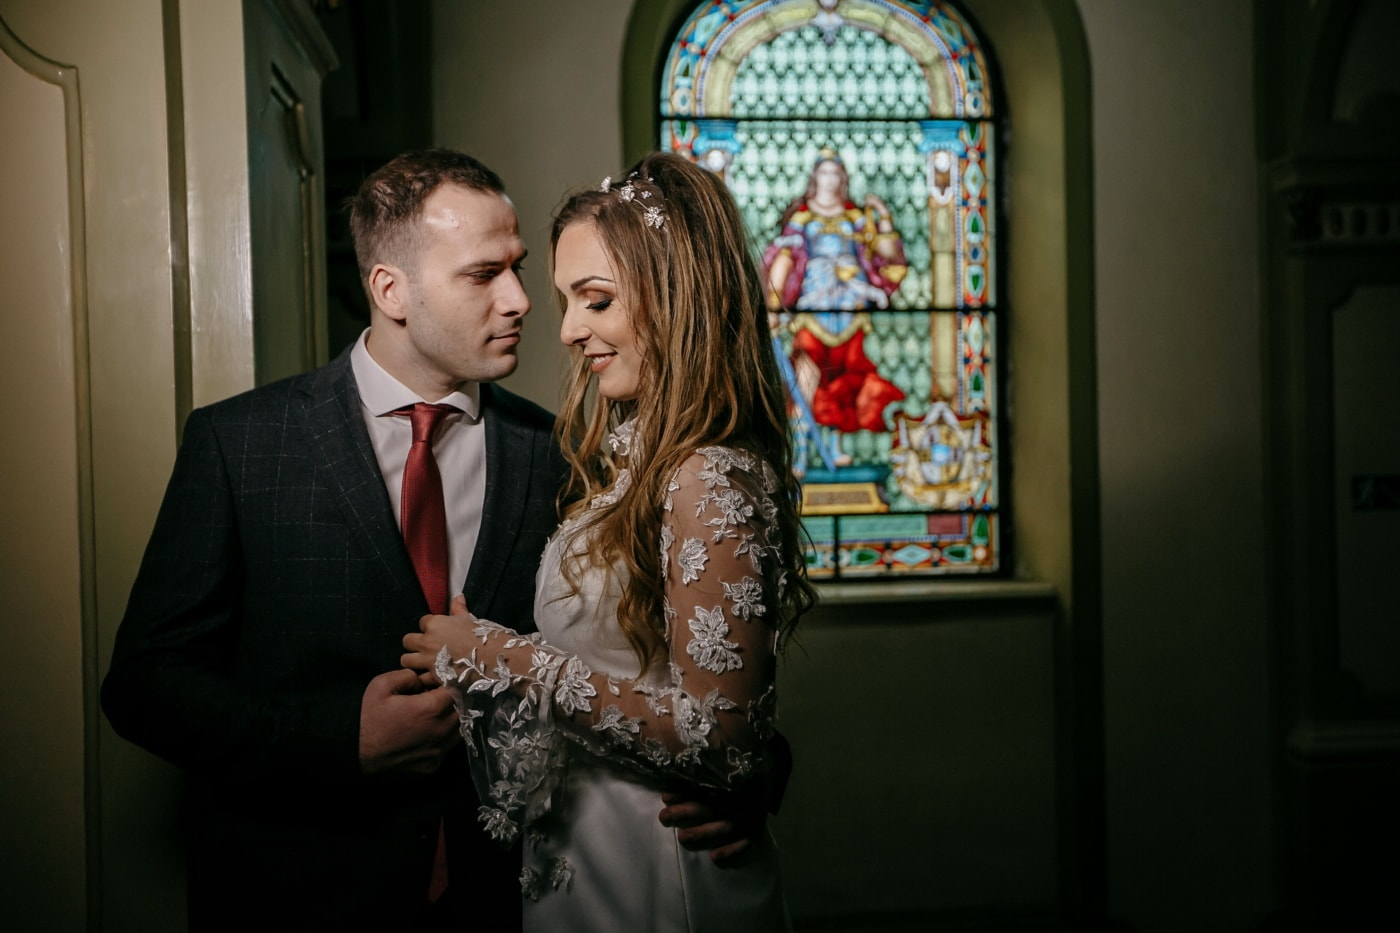 love date, church, groom, bride, inside, people, man, woman, girl, portrait